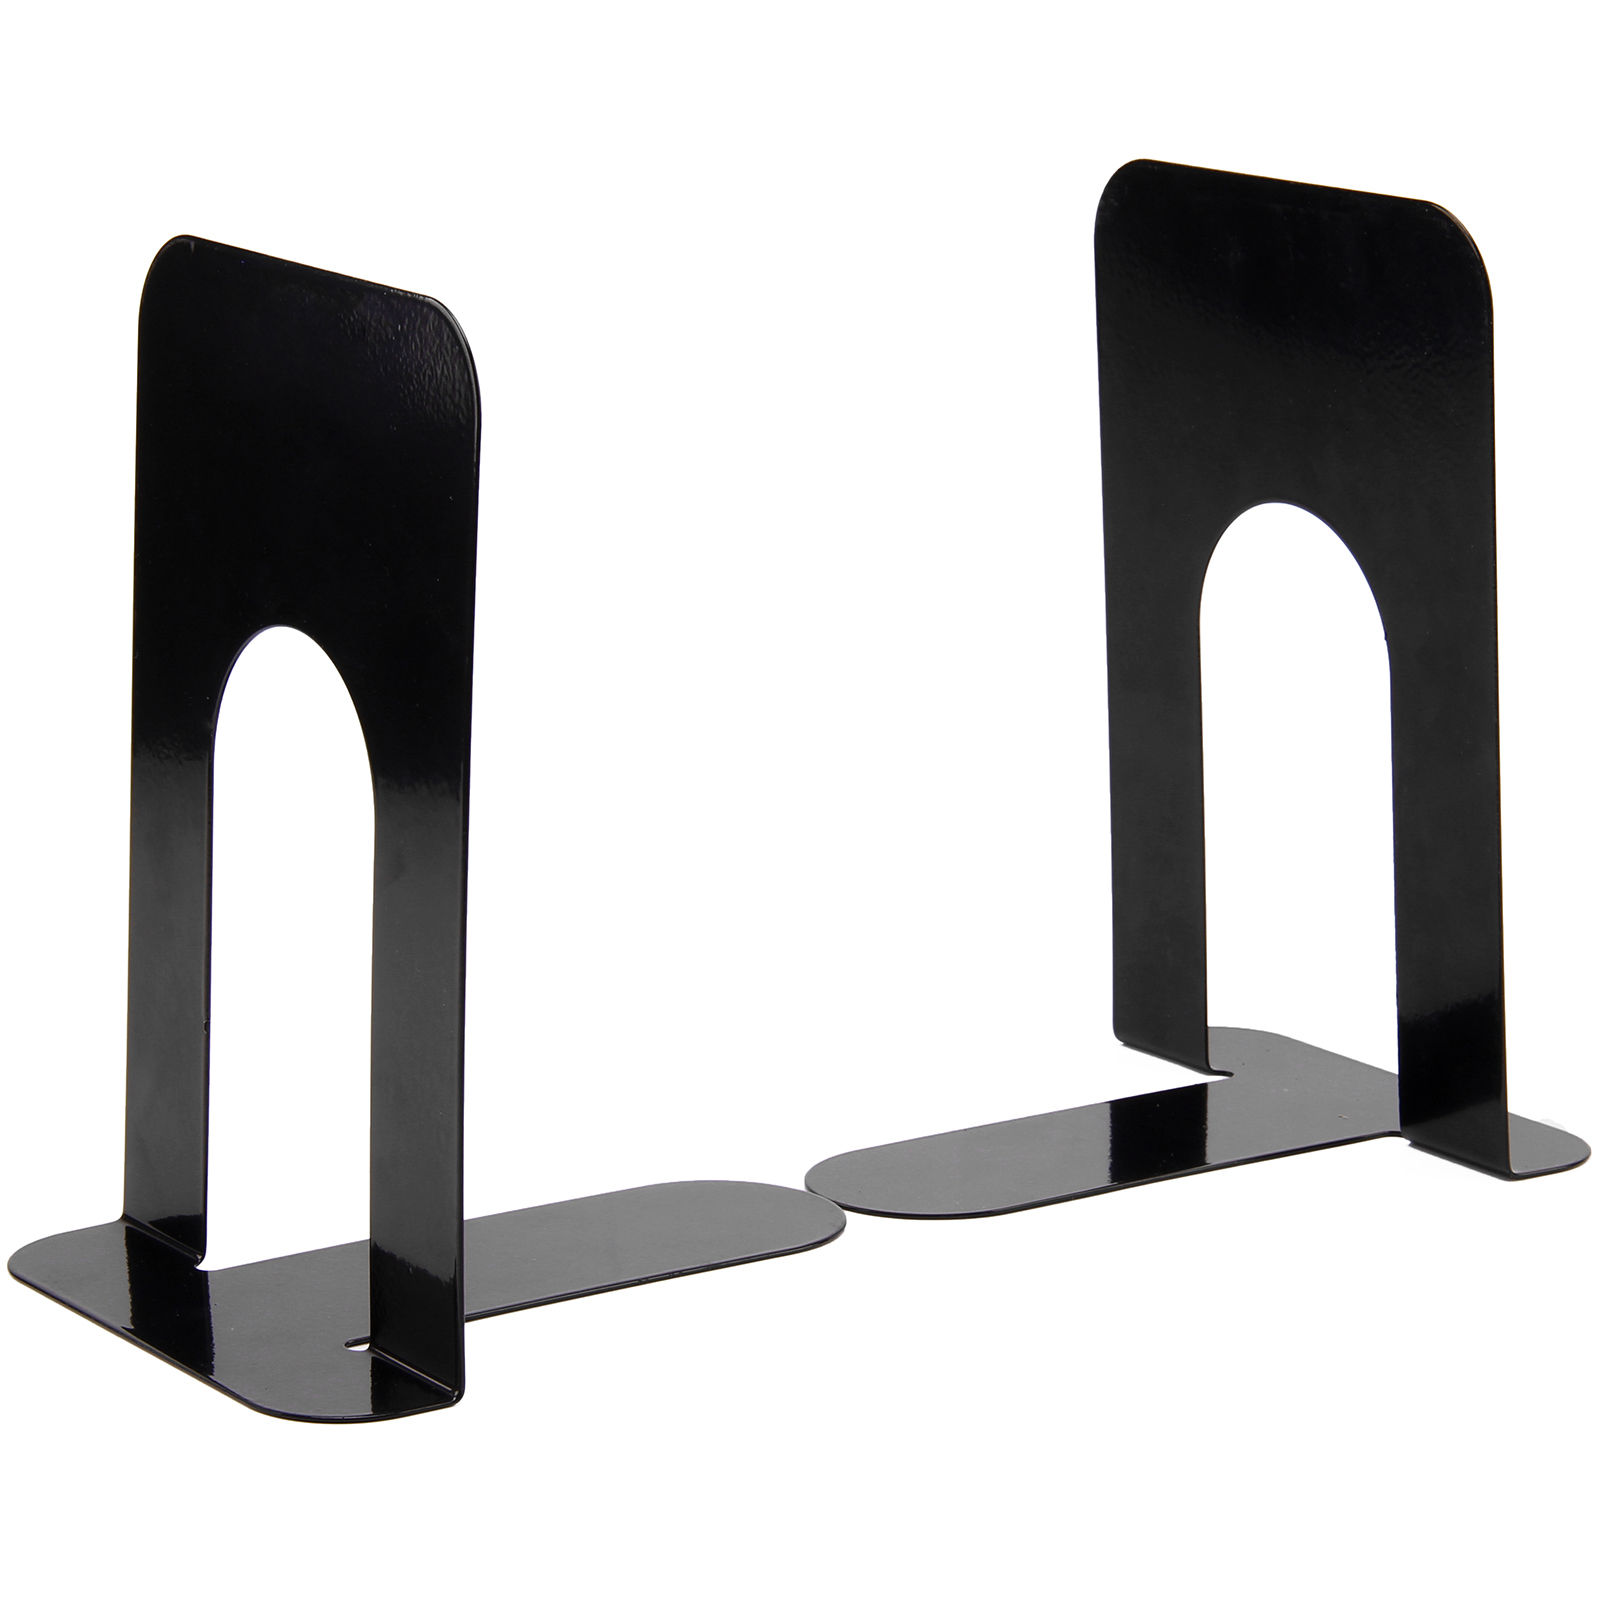 4 Pairs 8 Cheap Durable Heavy Duty Metal Book End Shelf Bookend Holder Office School Supplies Stationery Student Good Helper deli heavy duty hole punch office school supplies stationery 0150